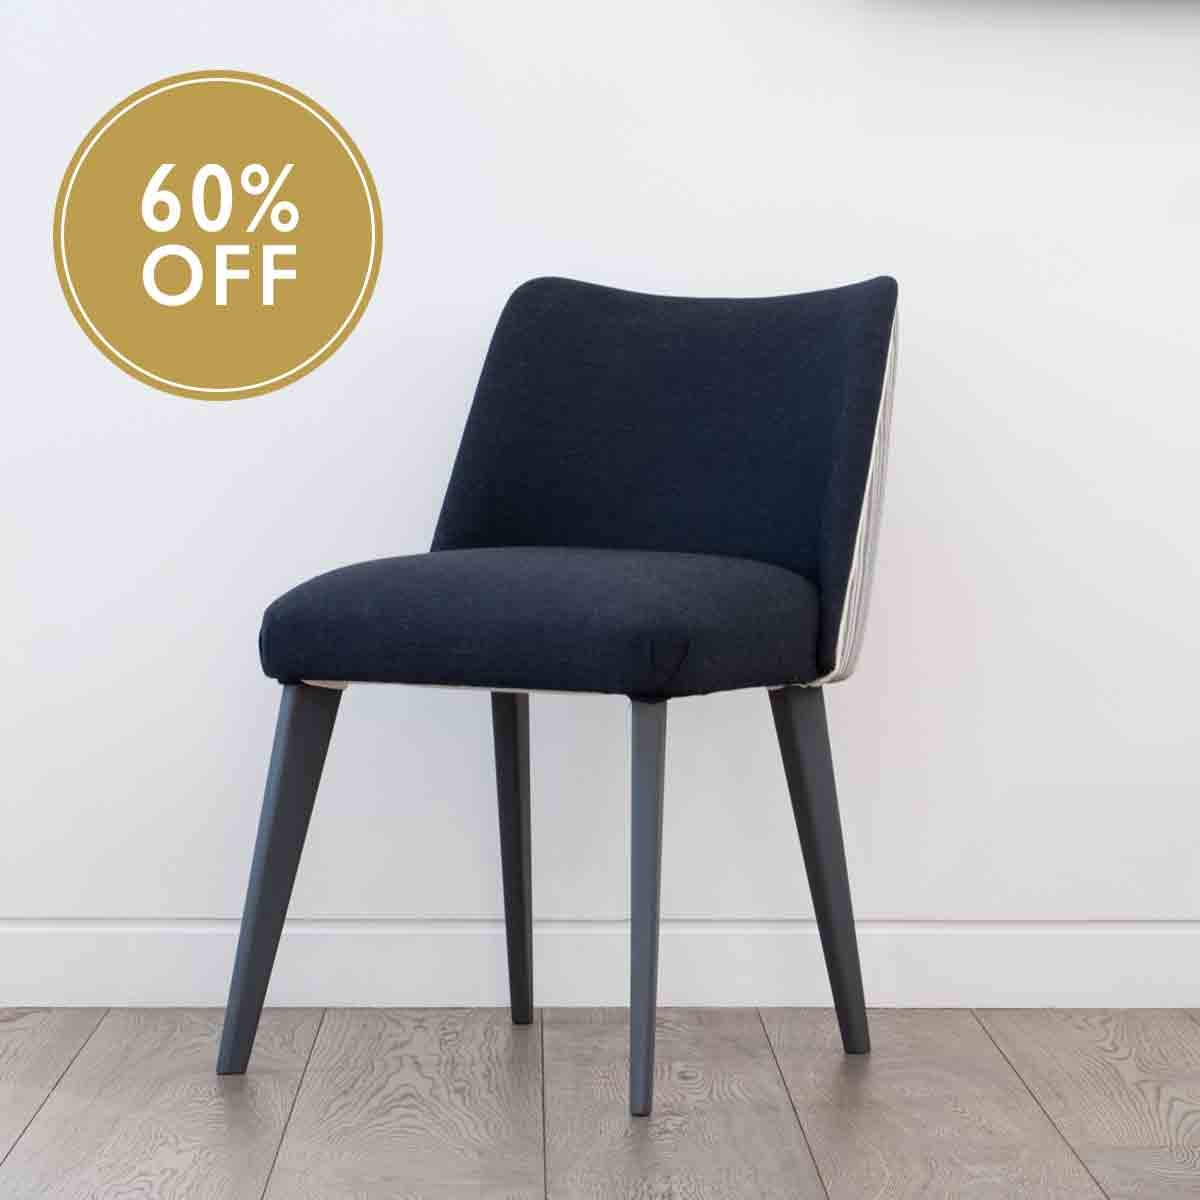 Studio Favourite Dining Chair - Navy seat & Smoke Grey Timber legs